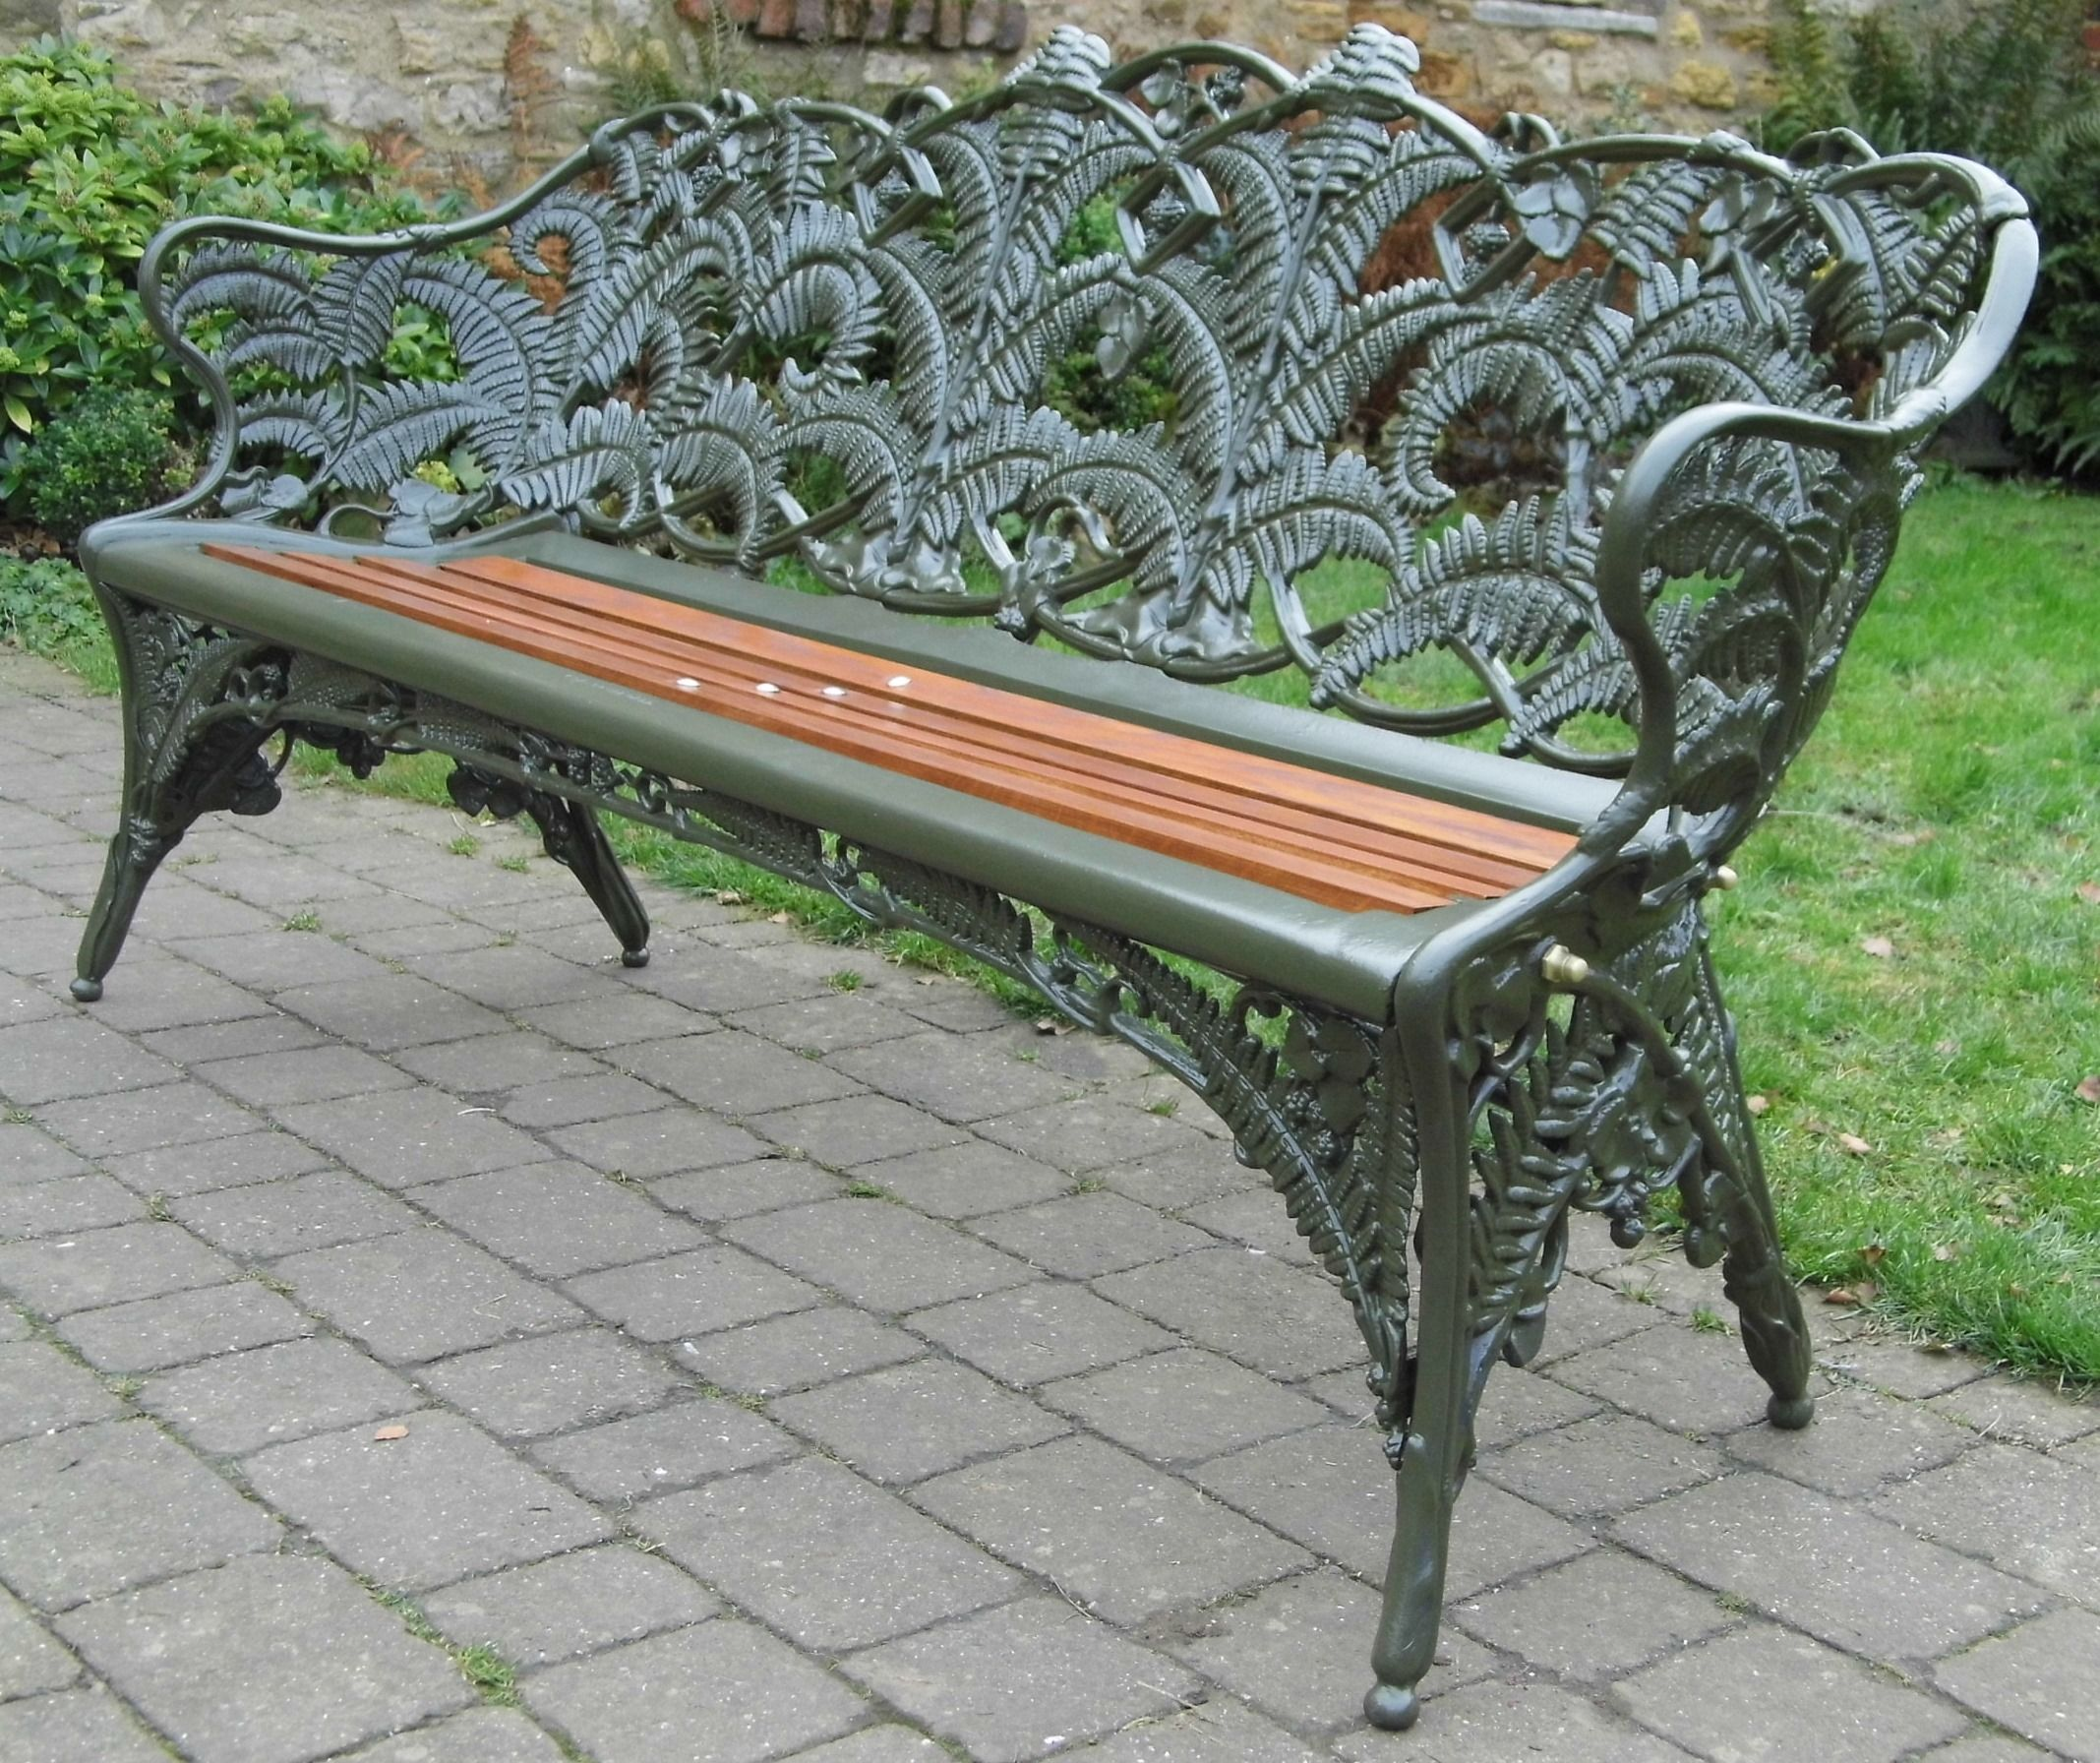 Coalbrookdale Fern And Blackberry Cast Iron Bench Fully Refurbished This Is A Super Rare Example Garden Bench Cast Iron Garden Bench Iron Bench